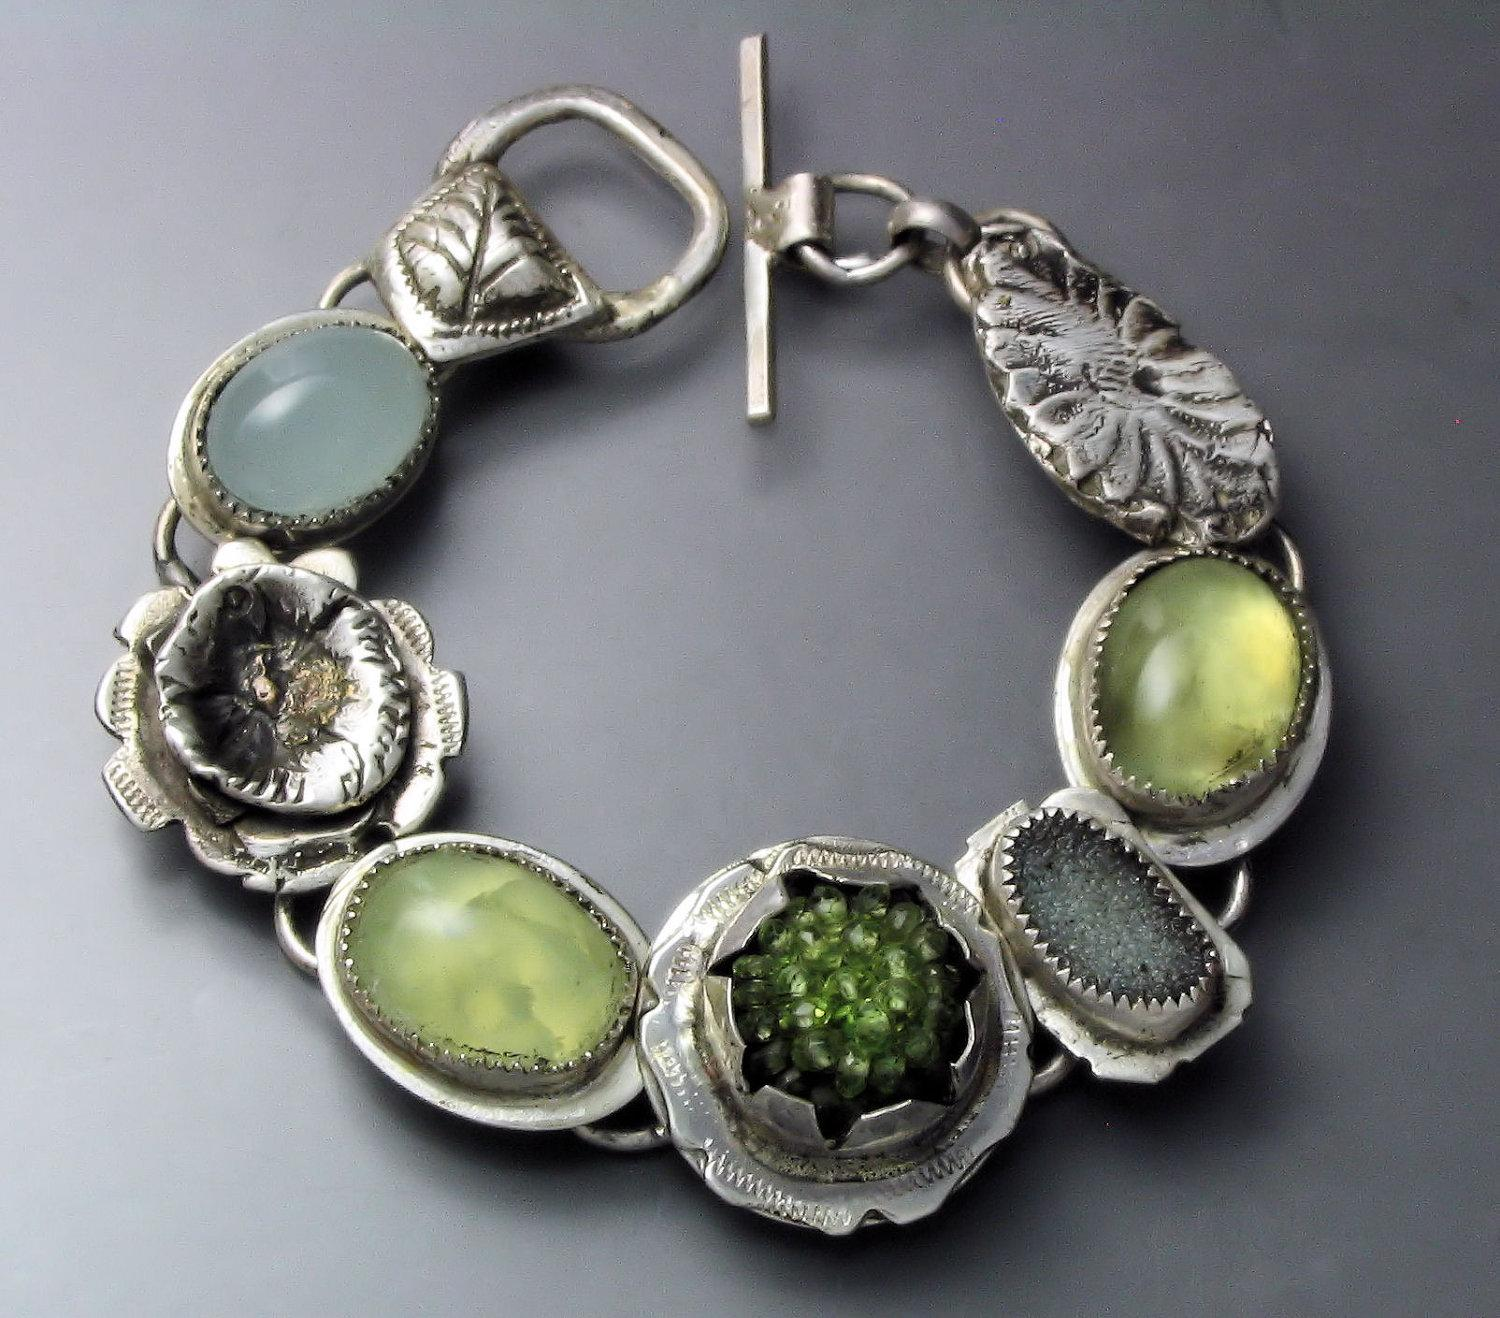 Peridot and Prehnite Bracelet by Temi on Etsy